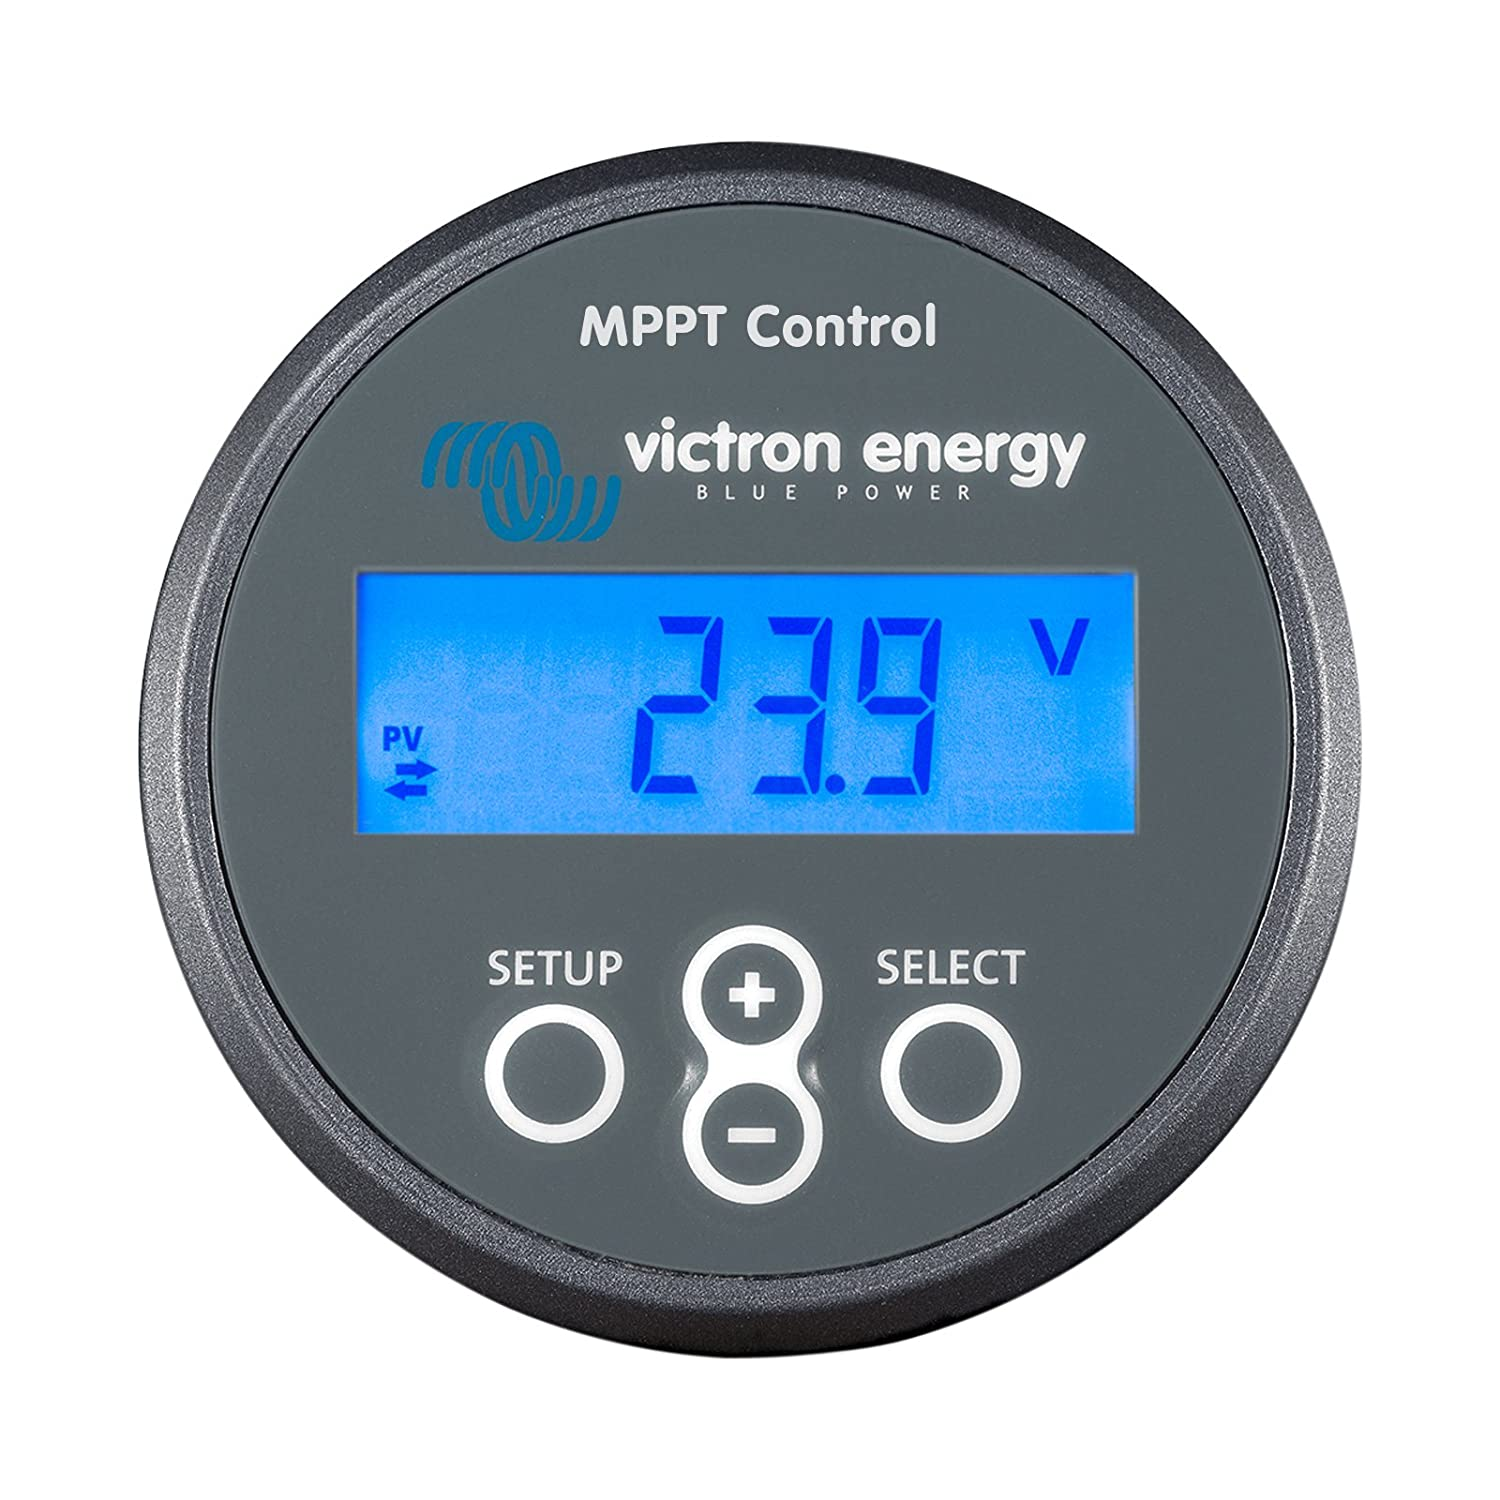 to monitor Victron BlueSolar or SmartSolar MPPT solar charge controllers with a VE.Direct port Victron VE.Direct MPPT Control panel with LCD Display